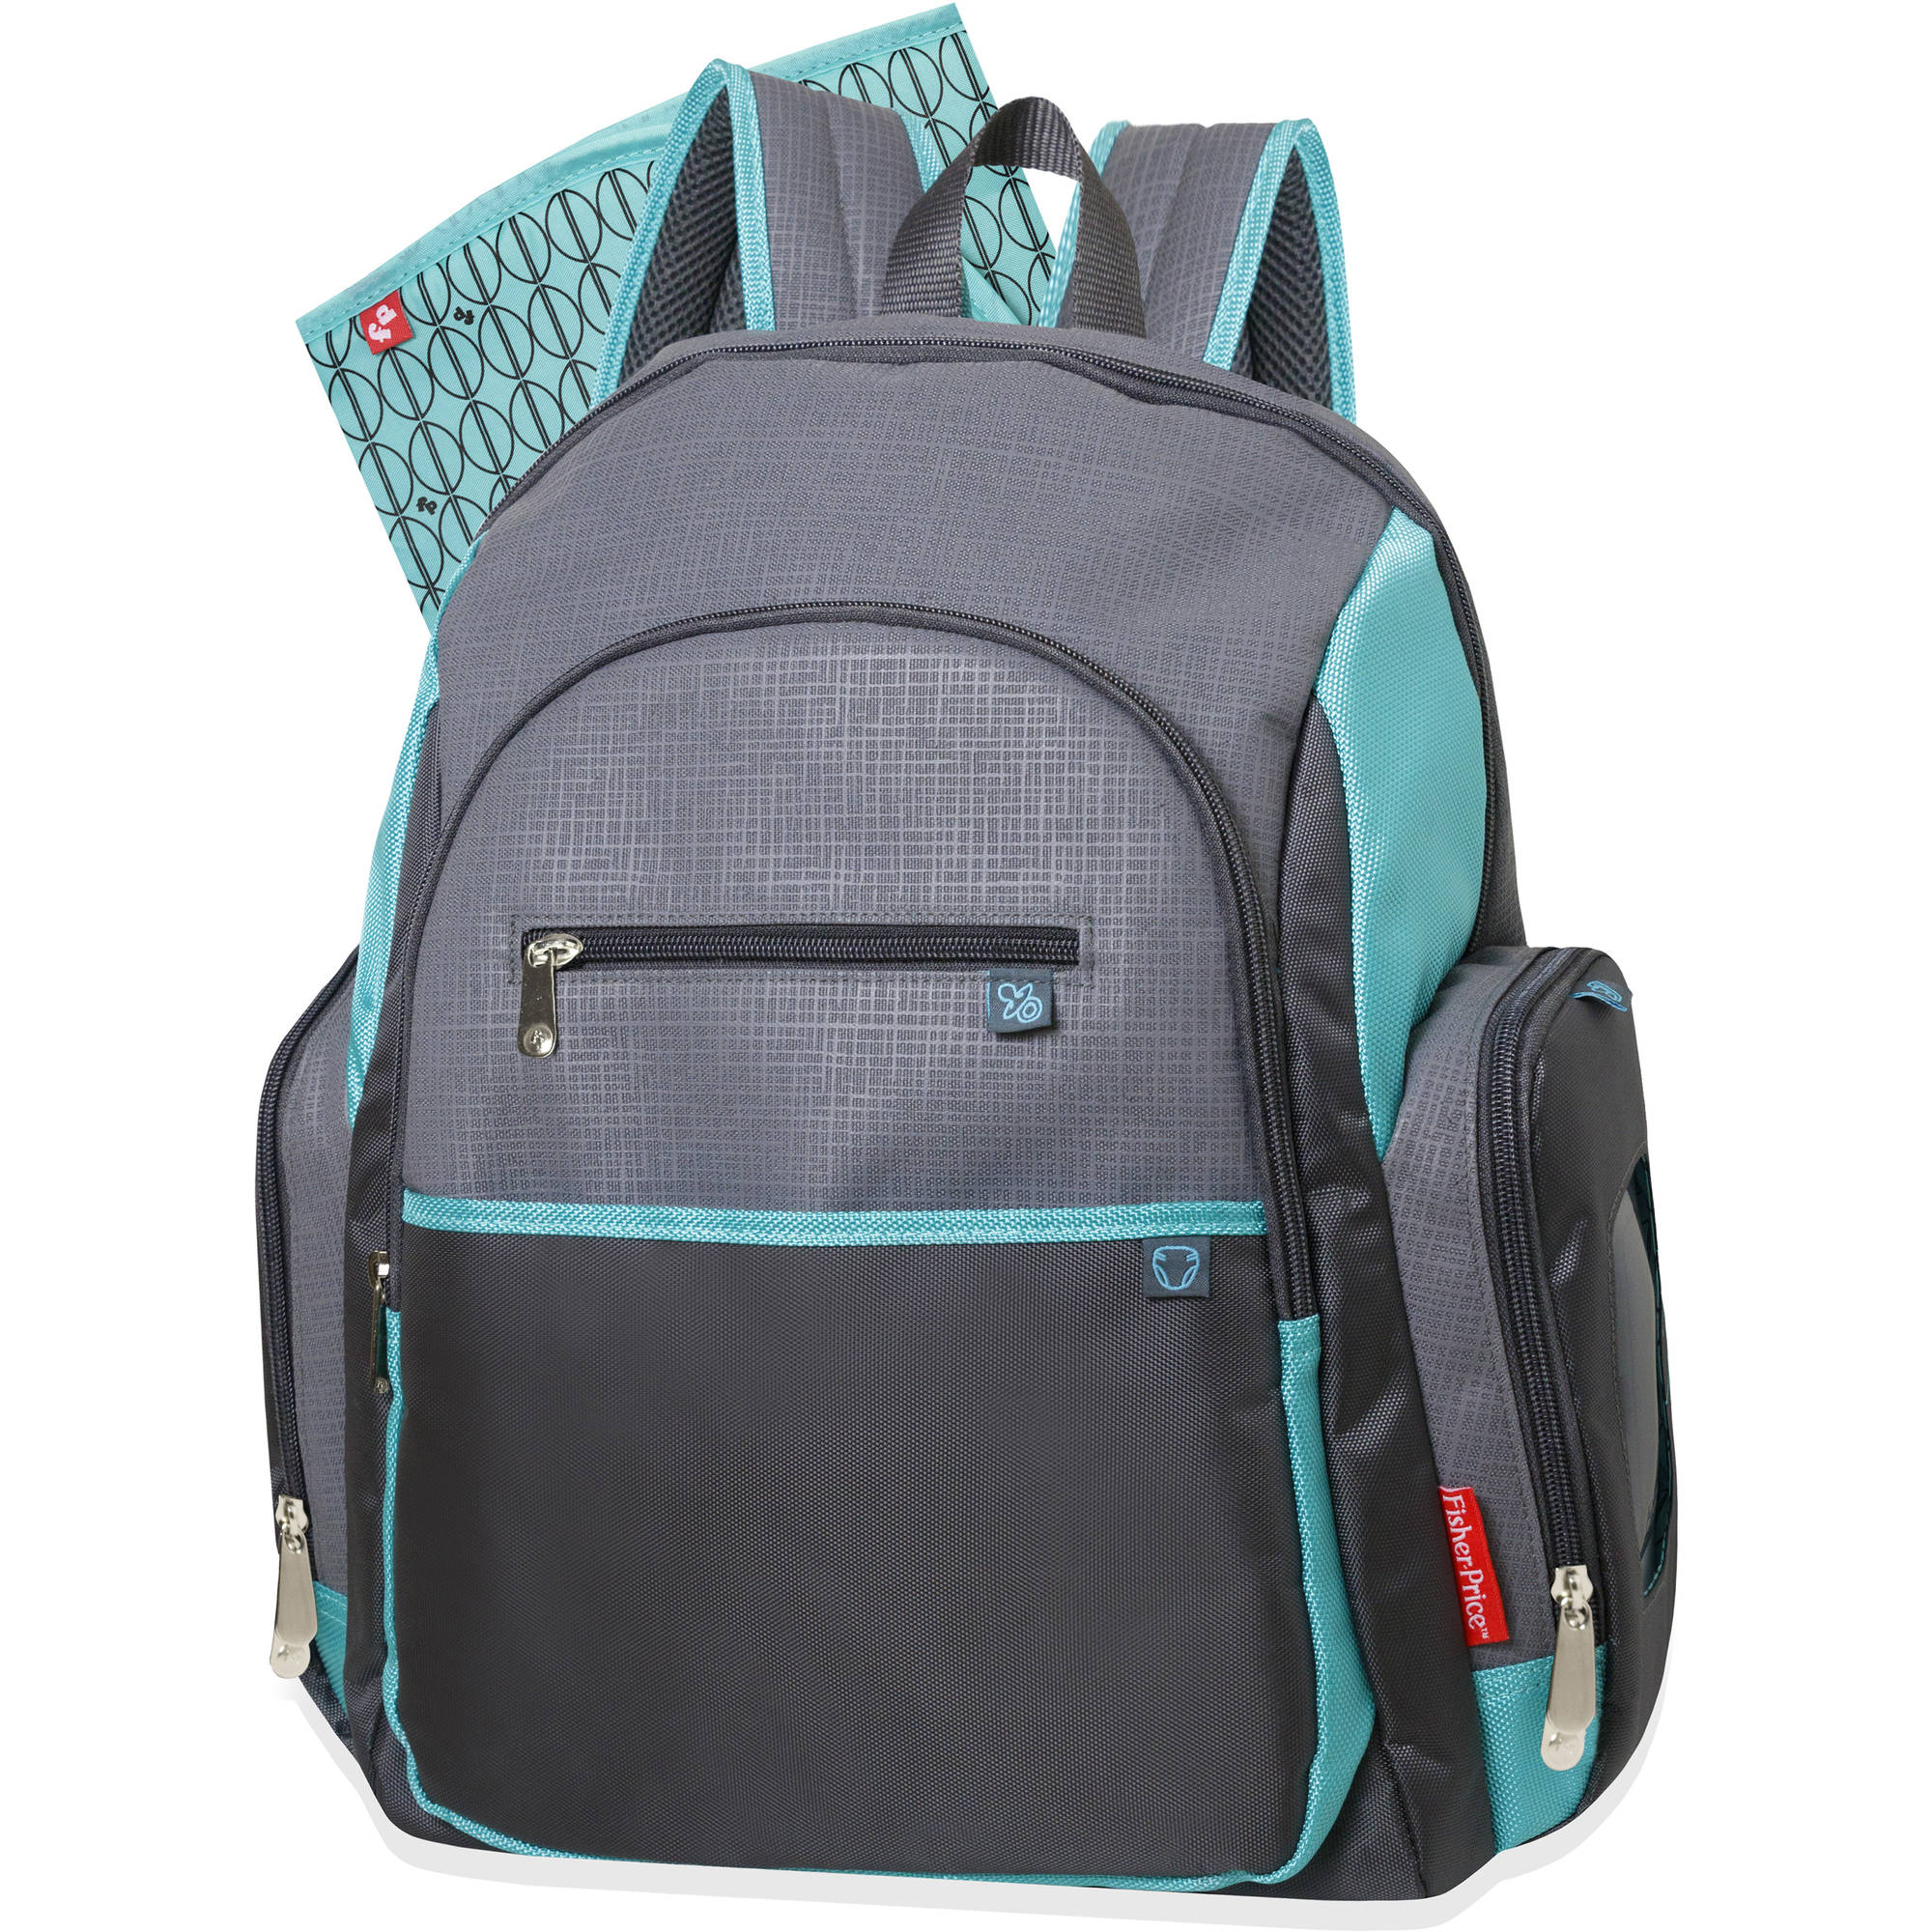 Fisher-Price Gray/Teal Deluxe Backpack Diaper Bag